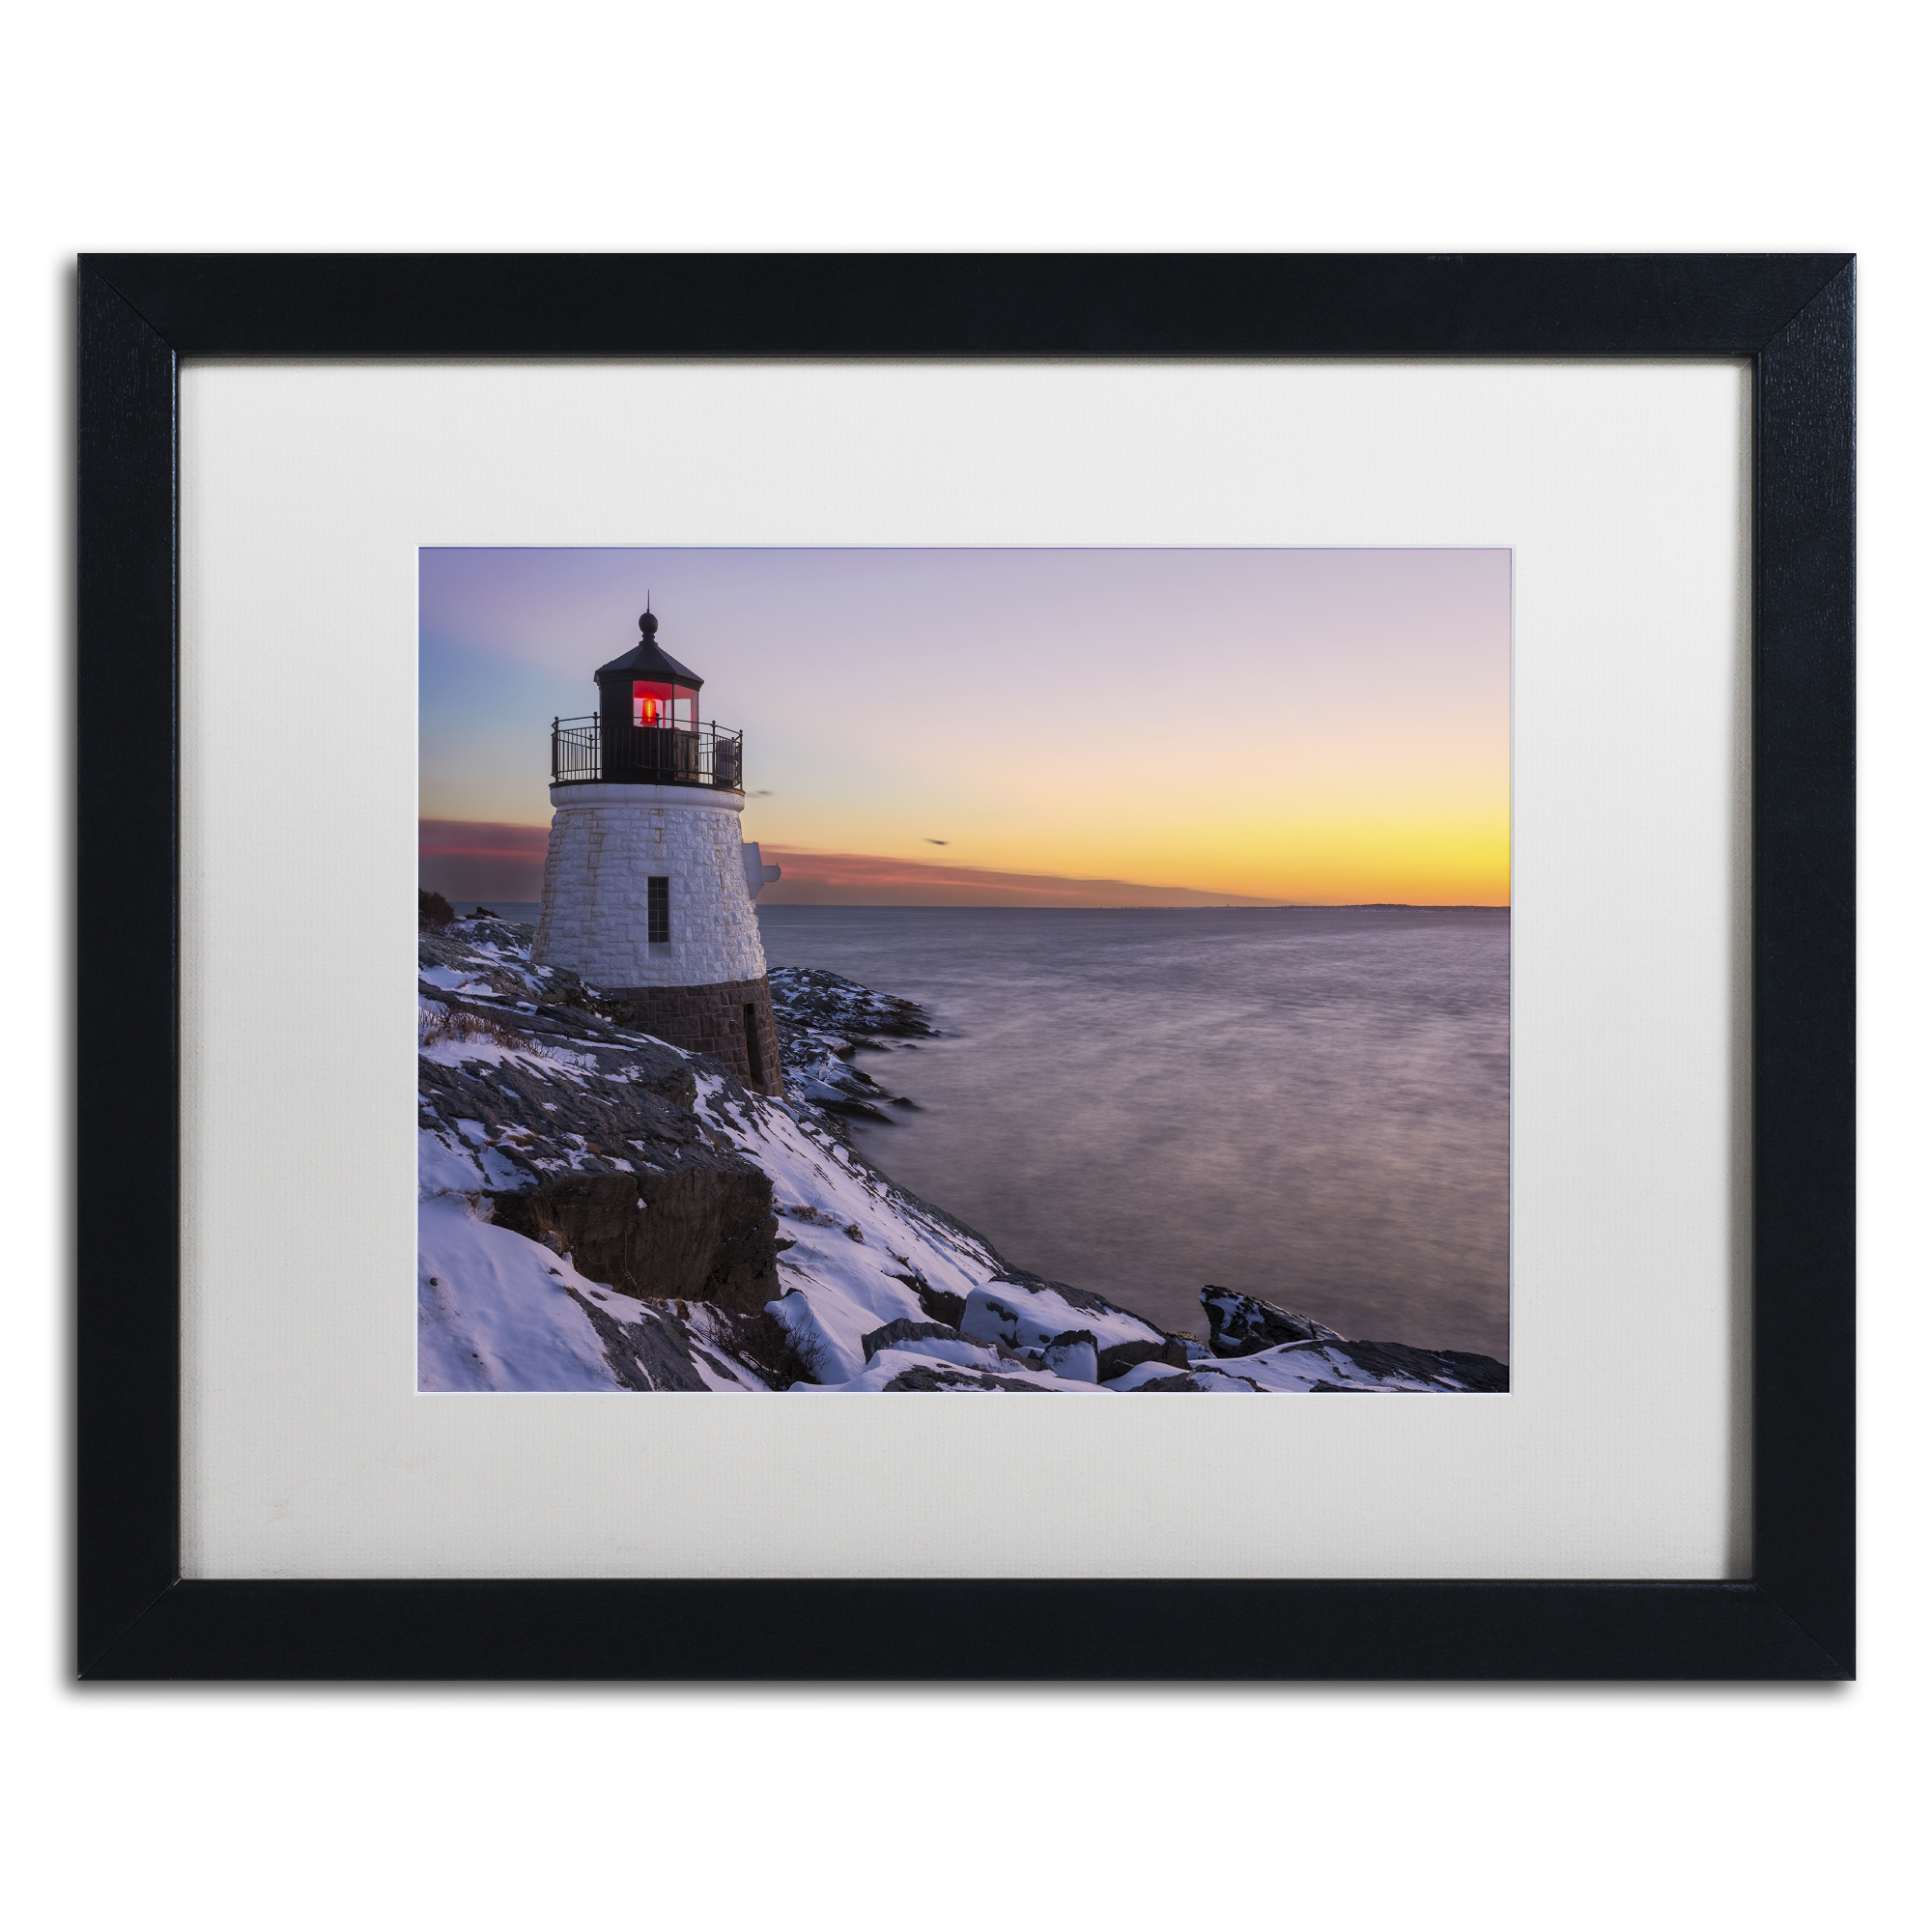 Michael Blanchette Photography 'Light on the Bay' Black Wooden Framed Art 18 x 22 Inches